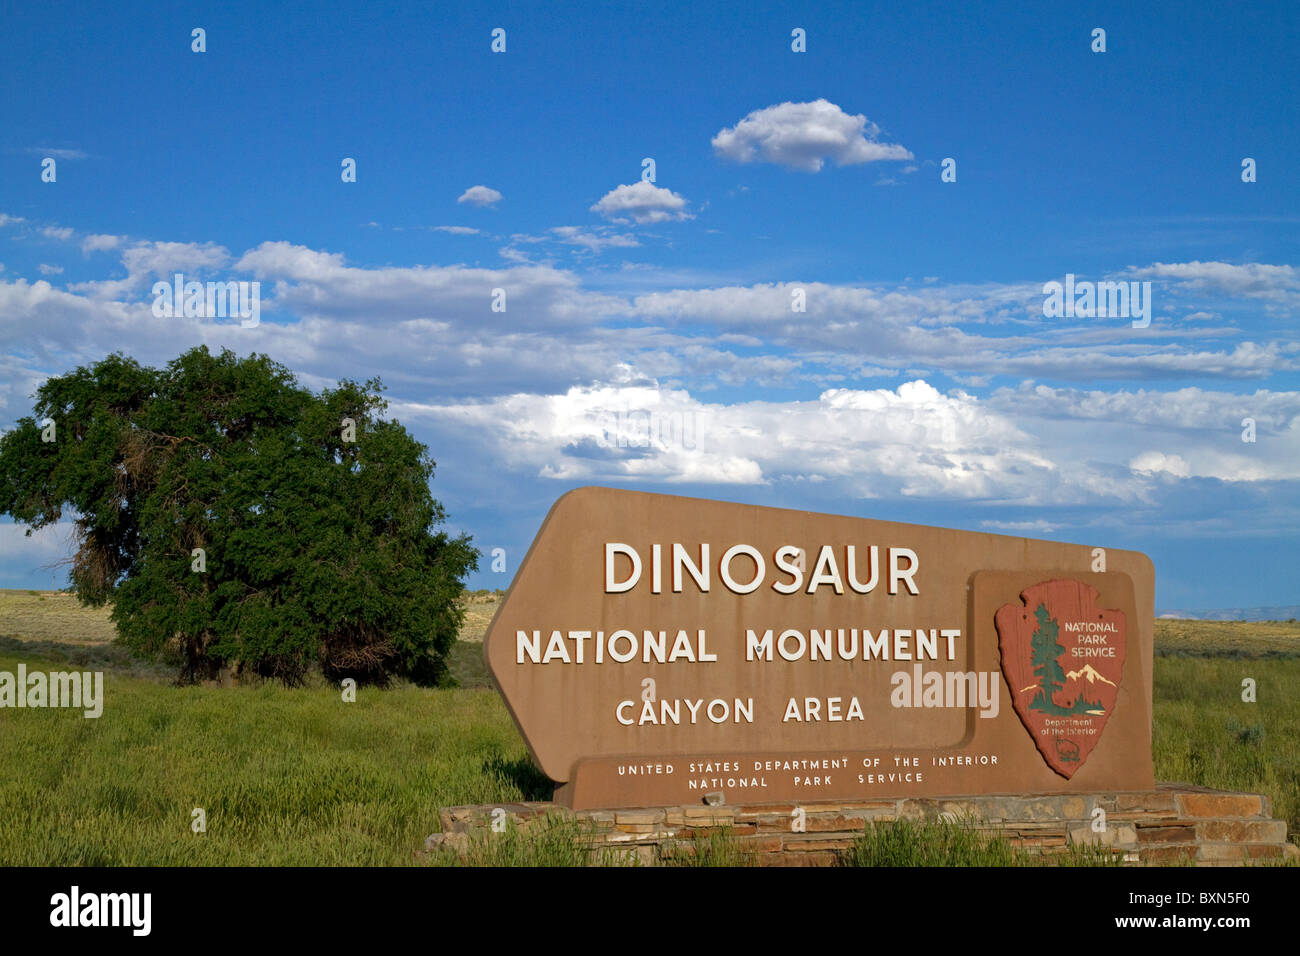 Dinosaur National Monument Canyon Area sign in Moffat County, Utah. - Stock Image